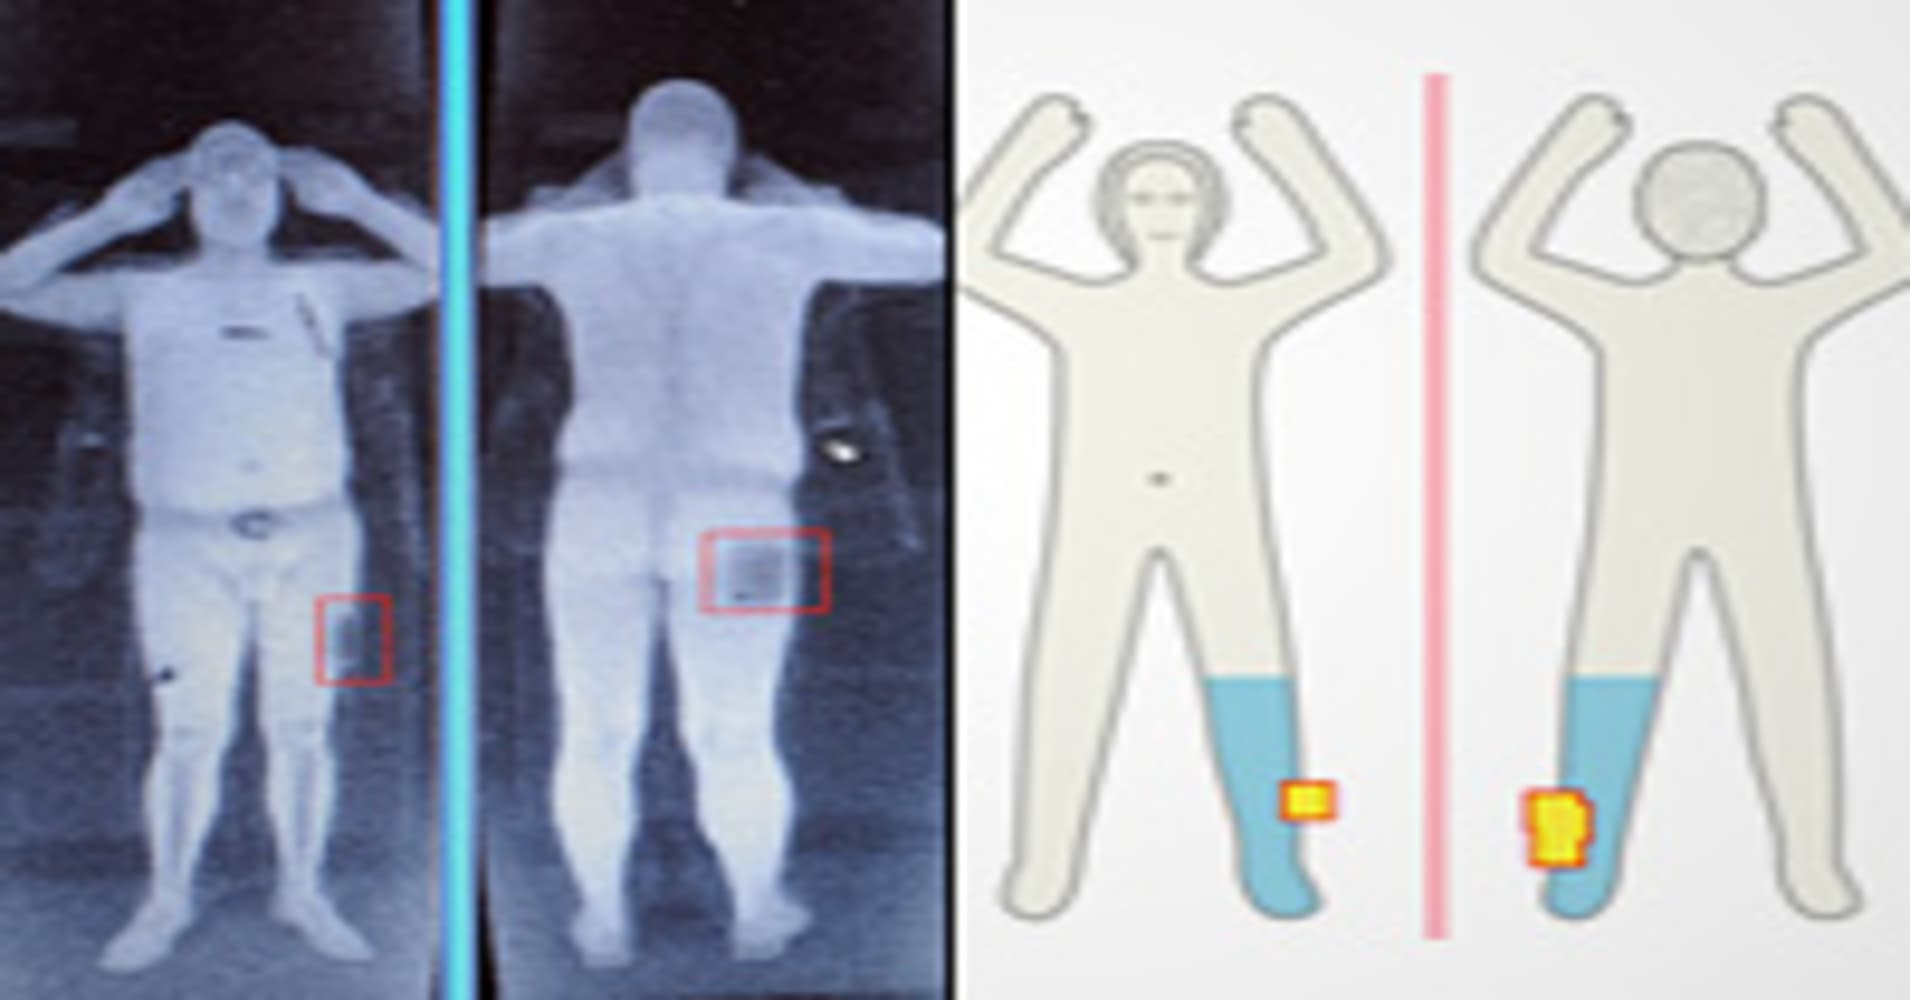 Major Airports To Remove Invasive X Ray Body Scanners